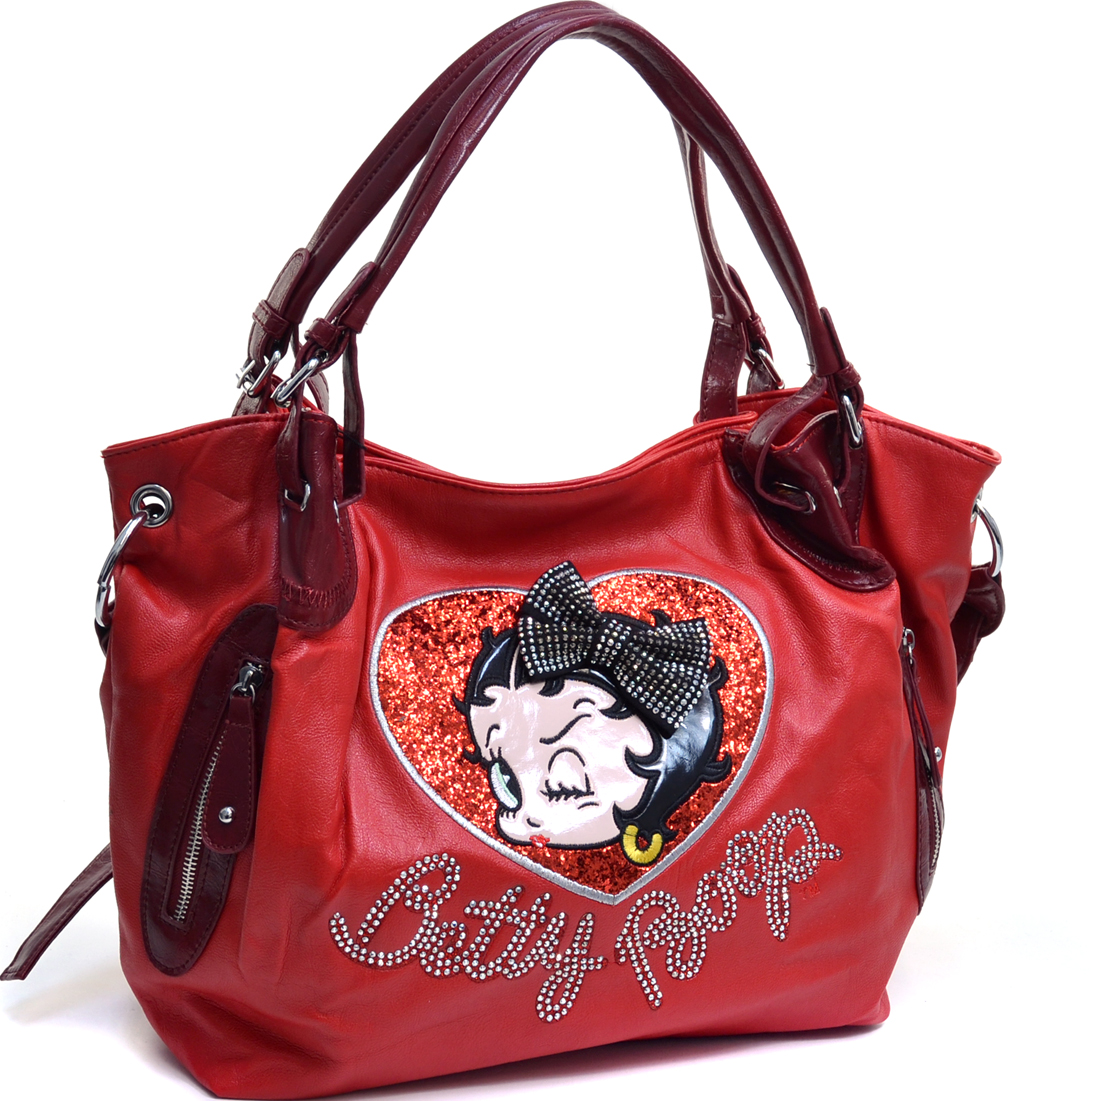 Betty Boop® Shoulder Bag with Rhinestone Bow